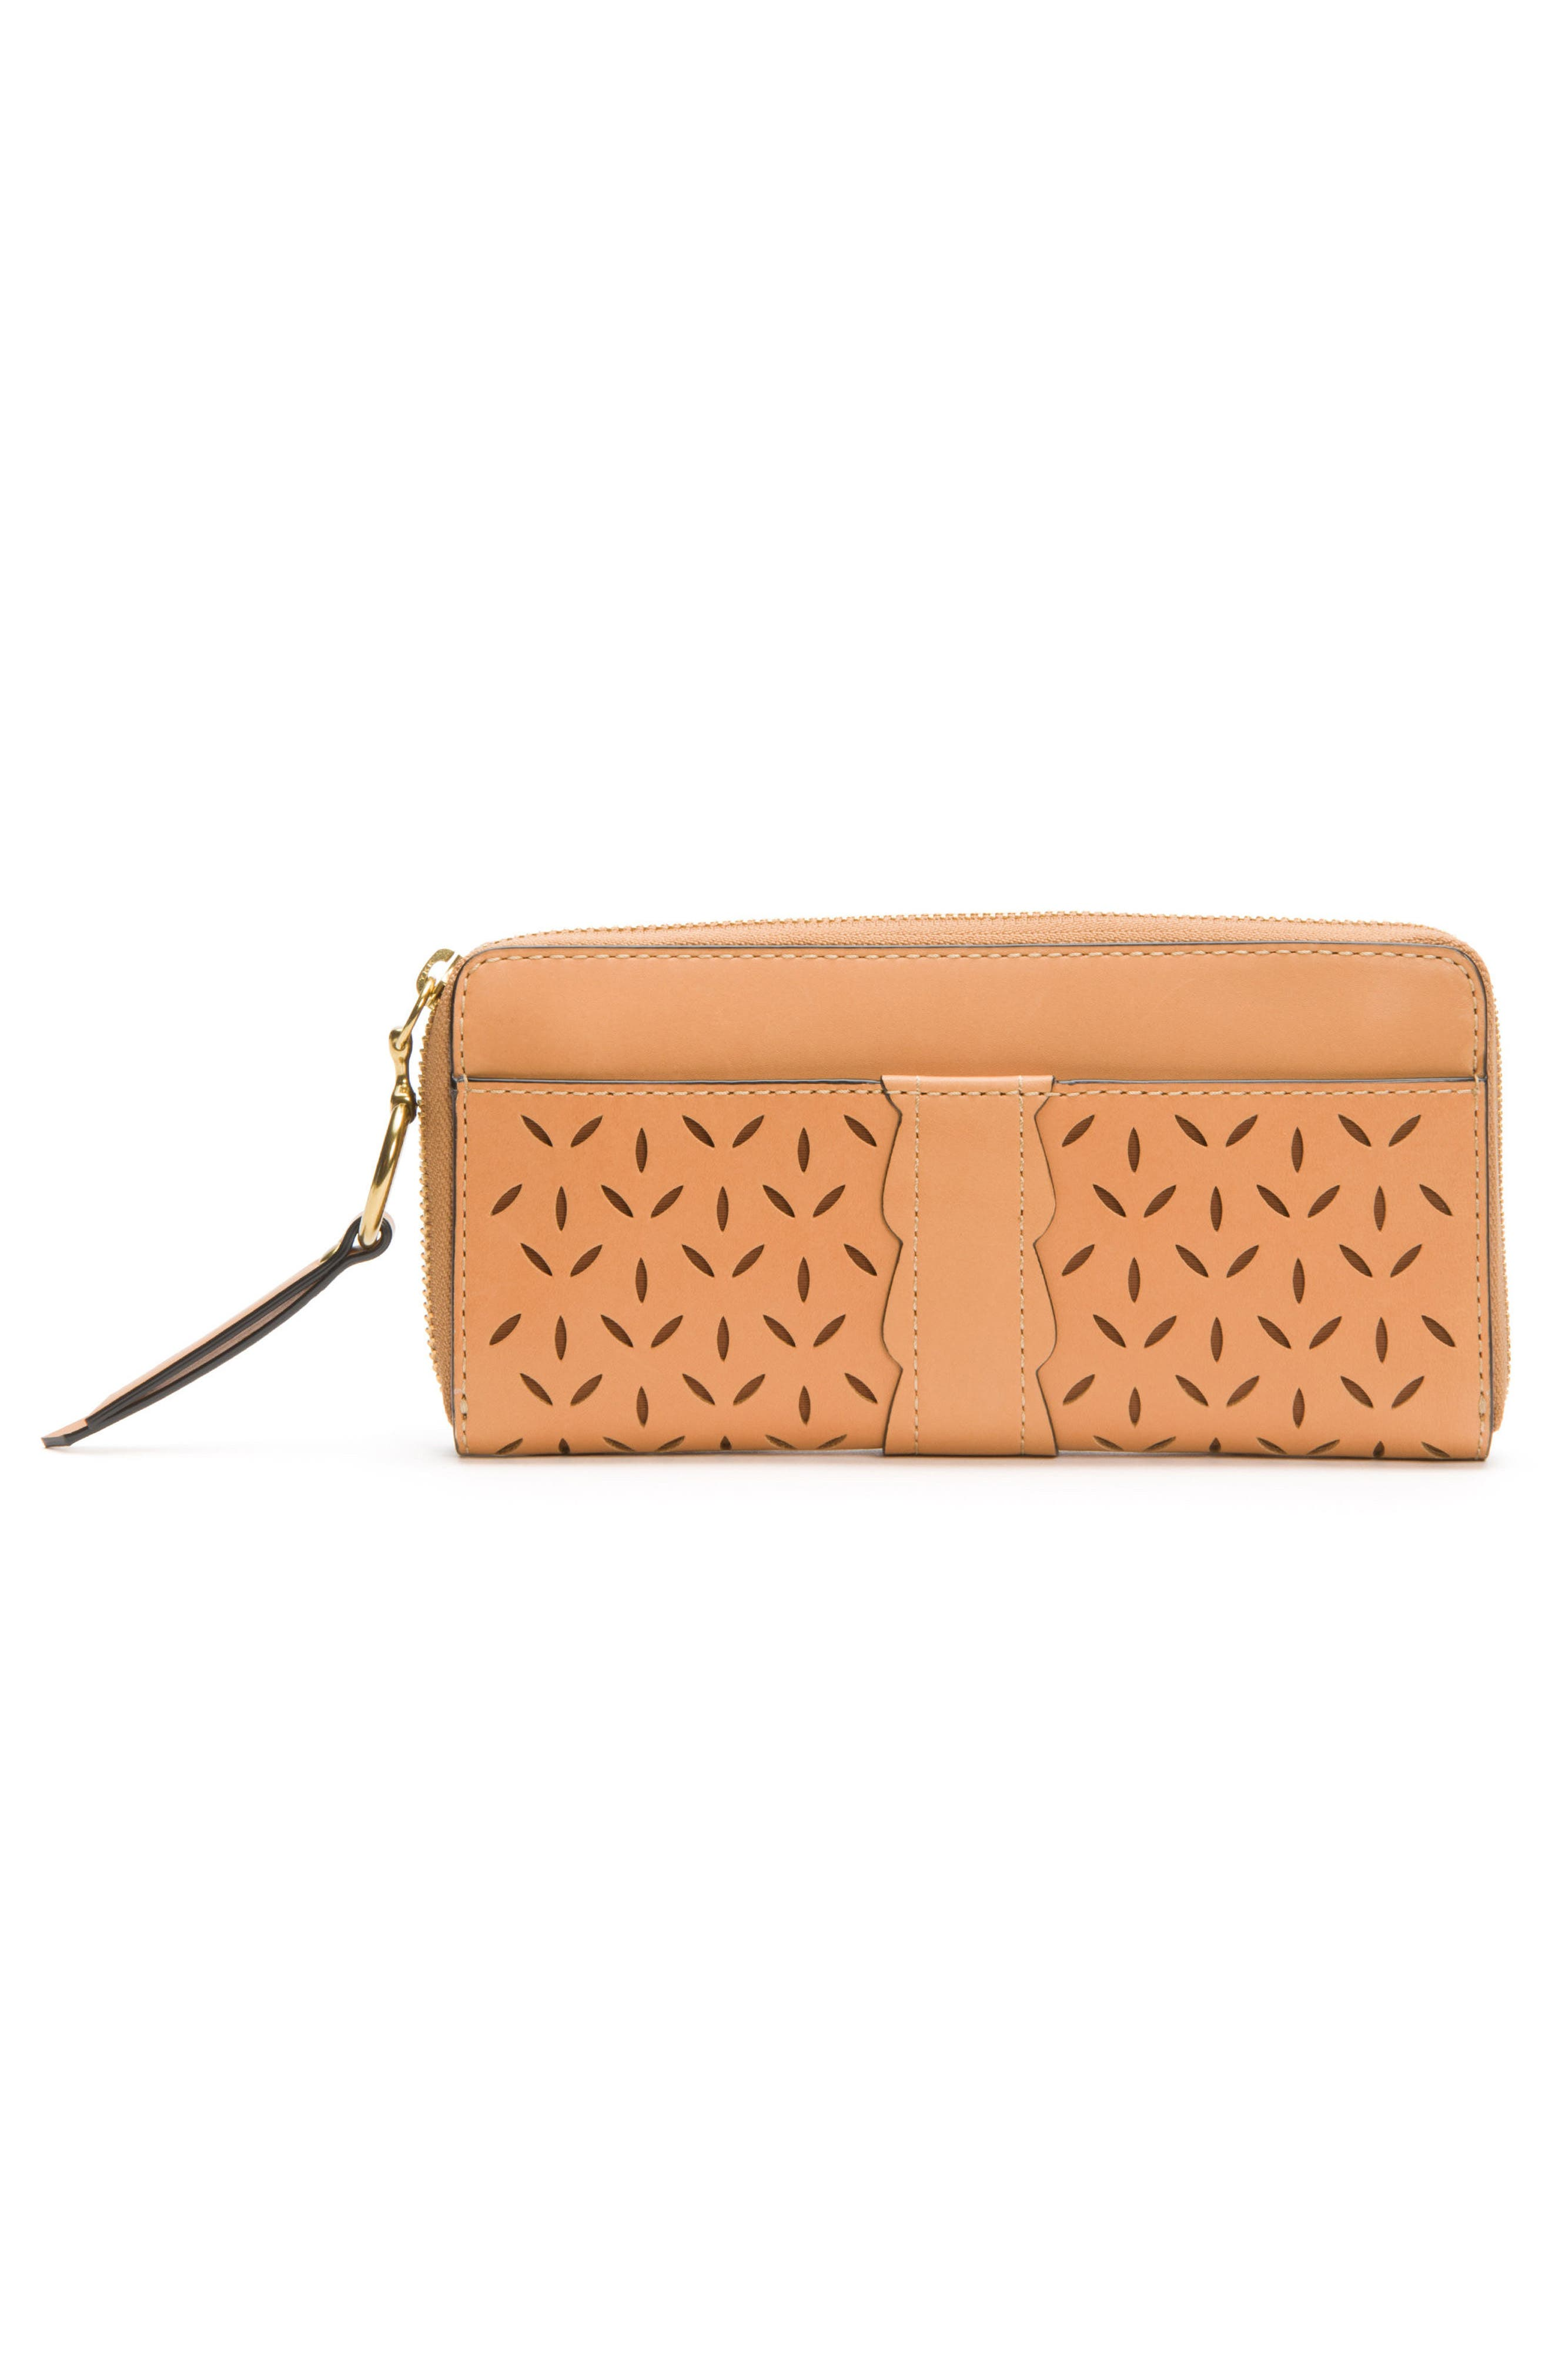 Large Ilana Perforated Leather Zip Wallet,                             Alternate thumbnail 8, color,